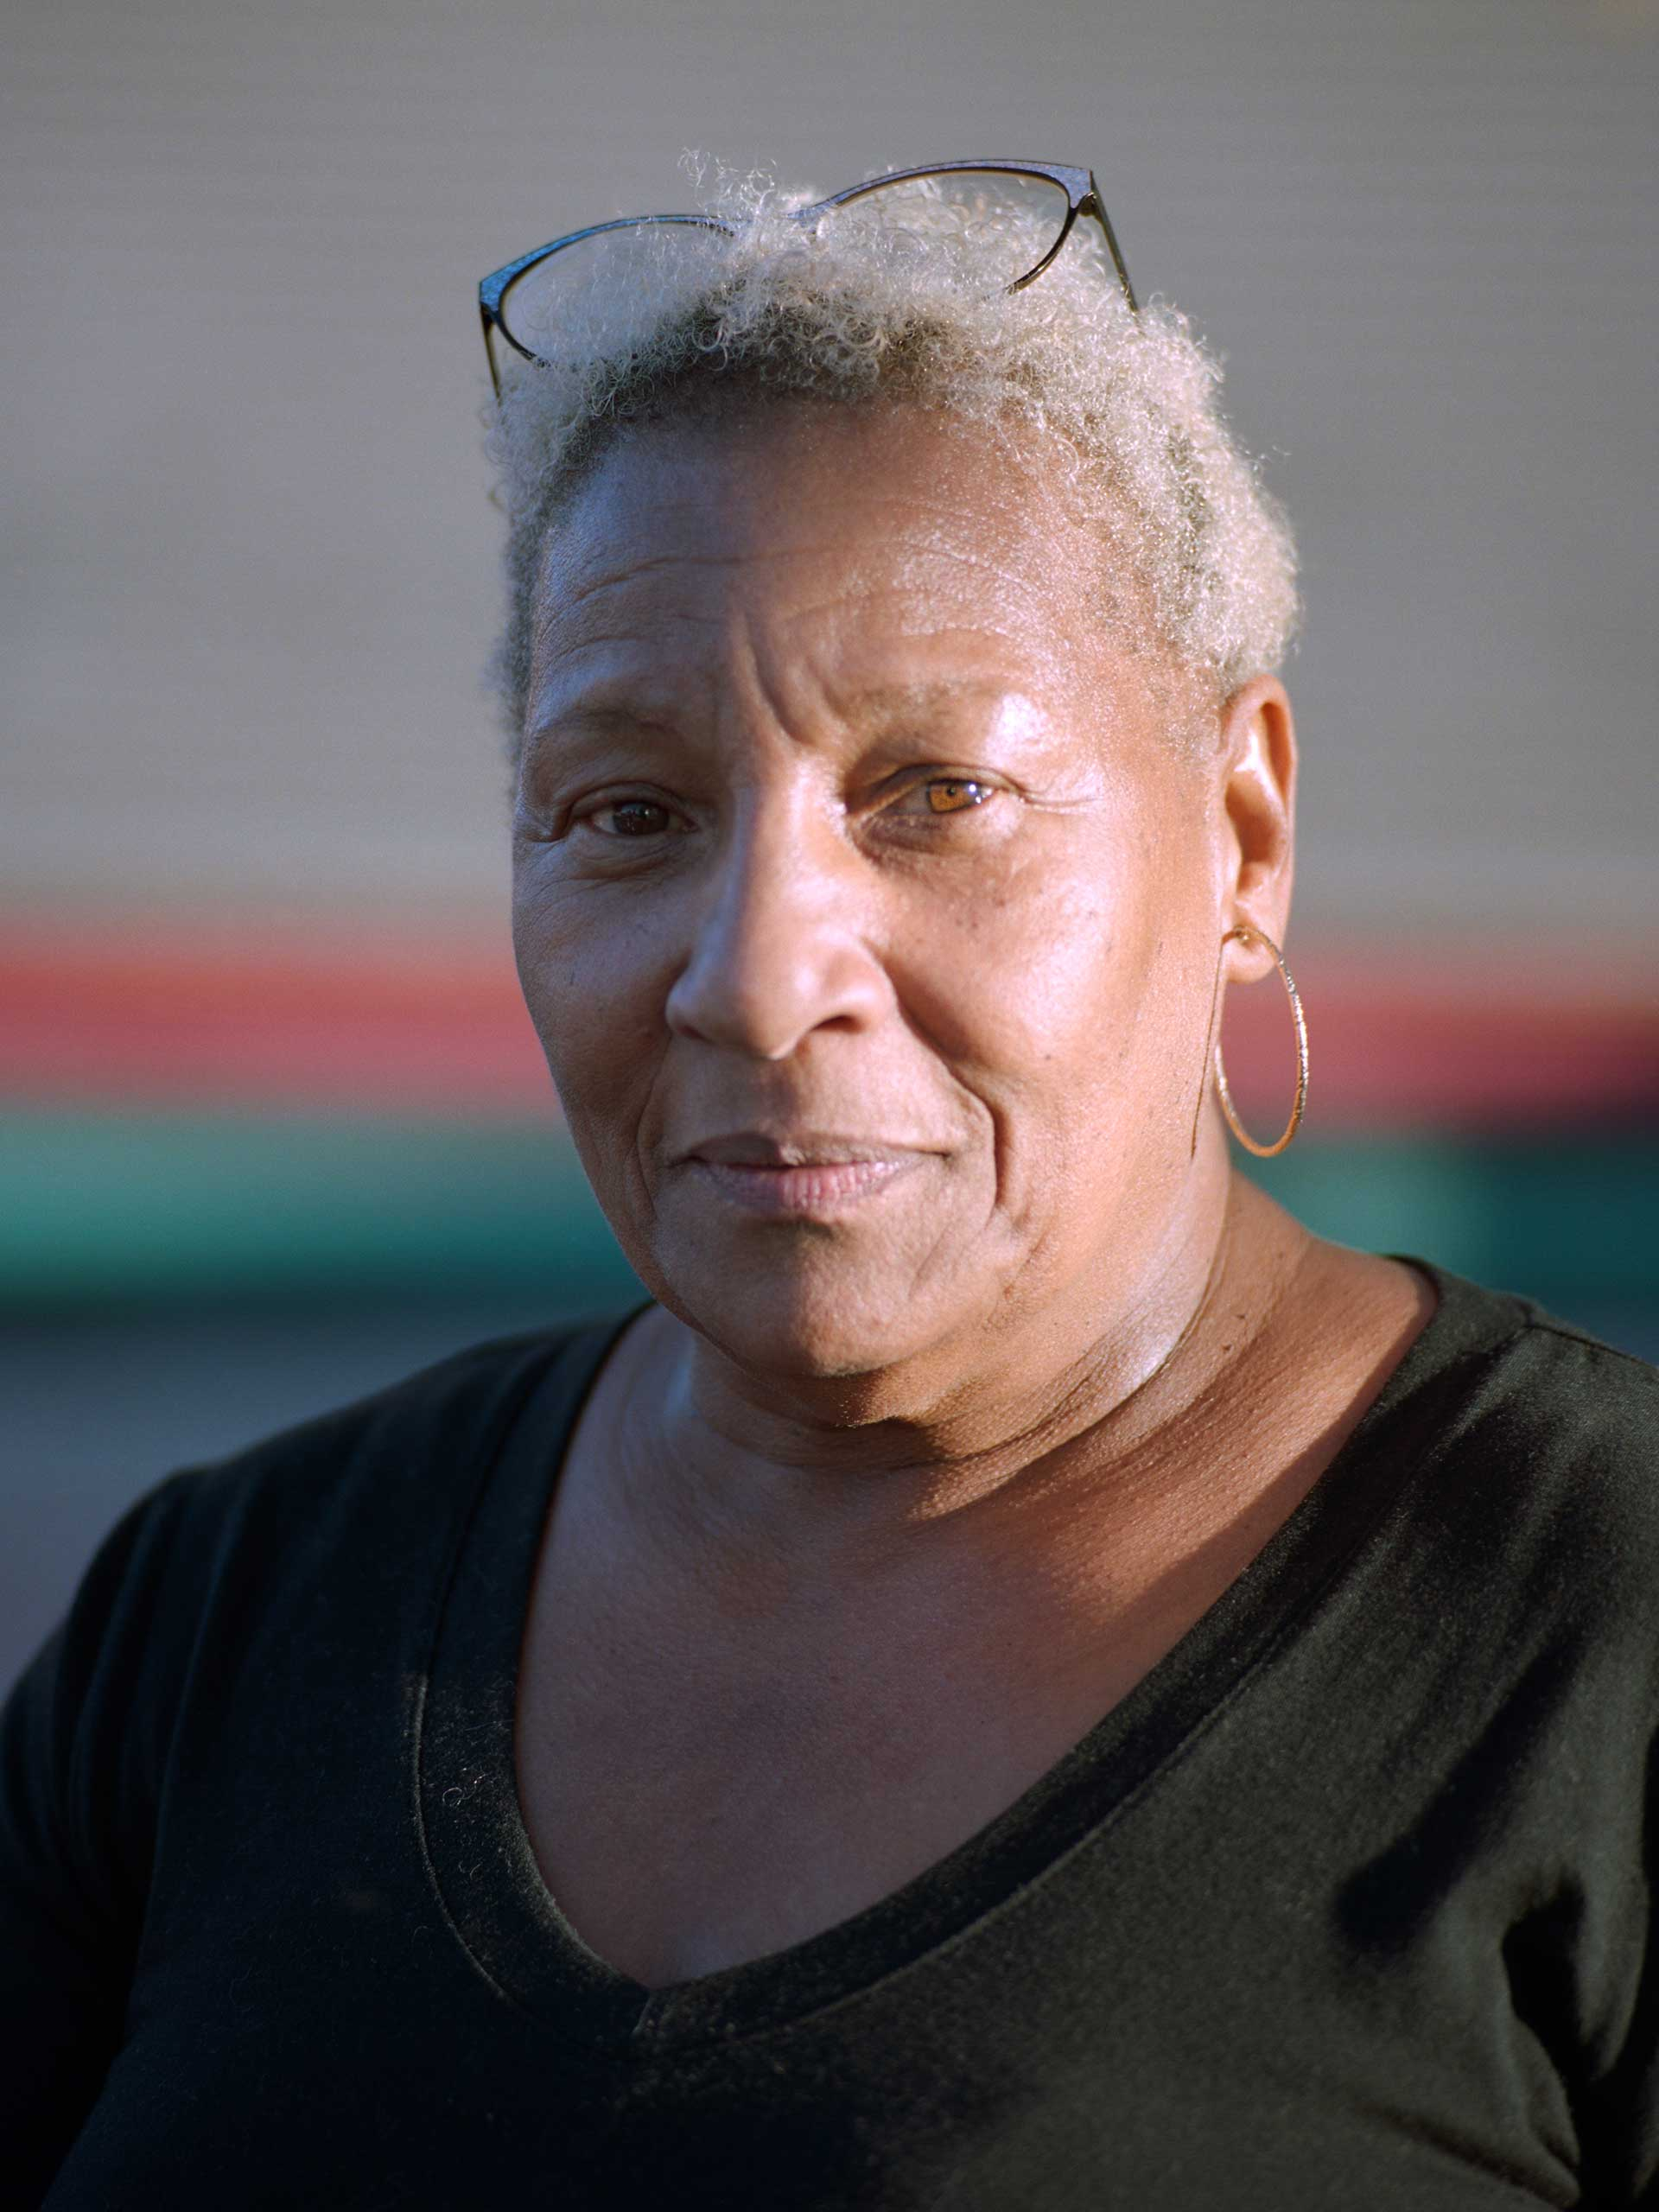 """Cynthia Galmore, age 63, is an embalmer and owns Joseph G. Locks Jr. Funeral Home in East Baltimore, which may be one of the oldest black-owned businesses in America. It was started around 1875 and she took over afer both the owner and his wife died within a few weeks of each other. """"I always said from day one when I first got in the business it was like something spiritual. It was like a godsend, okay? Because I basically started off trying to go to medical school and I wind up being an embalmer and it's something that you can't really take lightly, especially if you care about your families."""""""